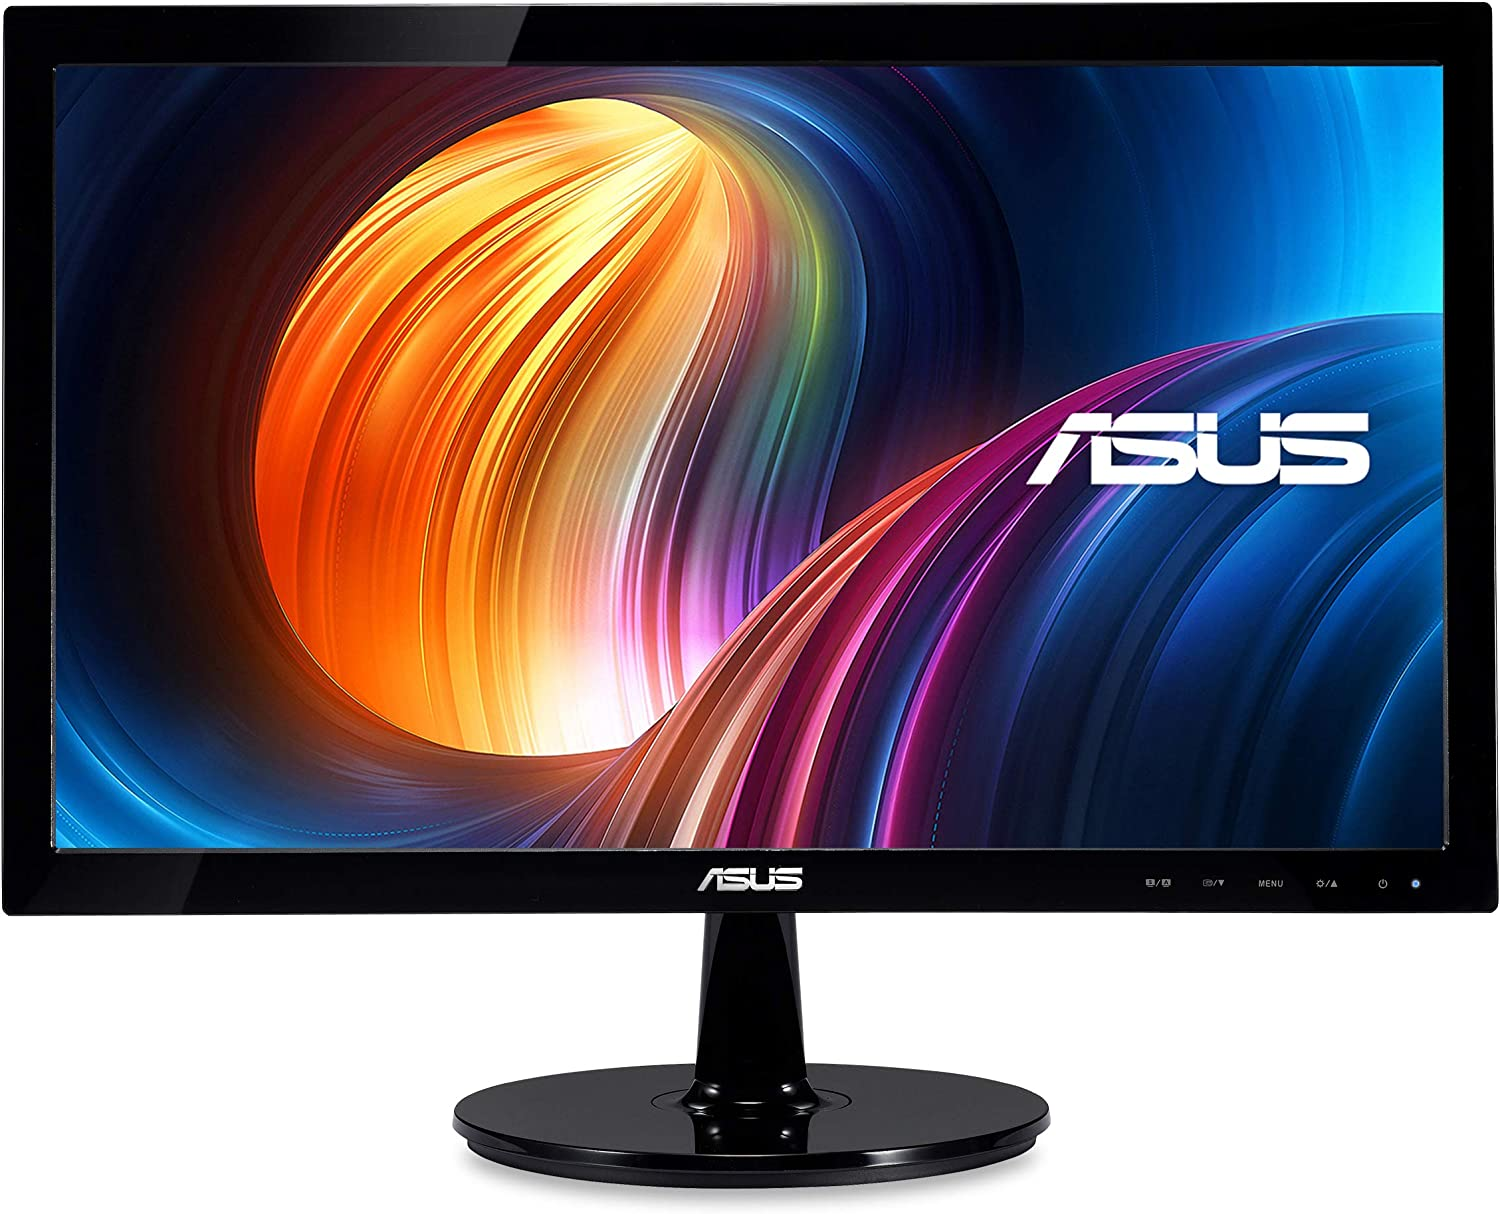 "ASUS VS207T-P 19.5"" HD+ 1600x900 DVI VGA Back-lit LED Monitor,Black"